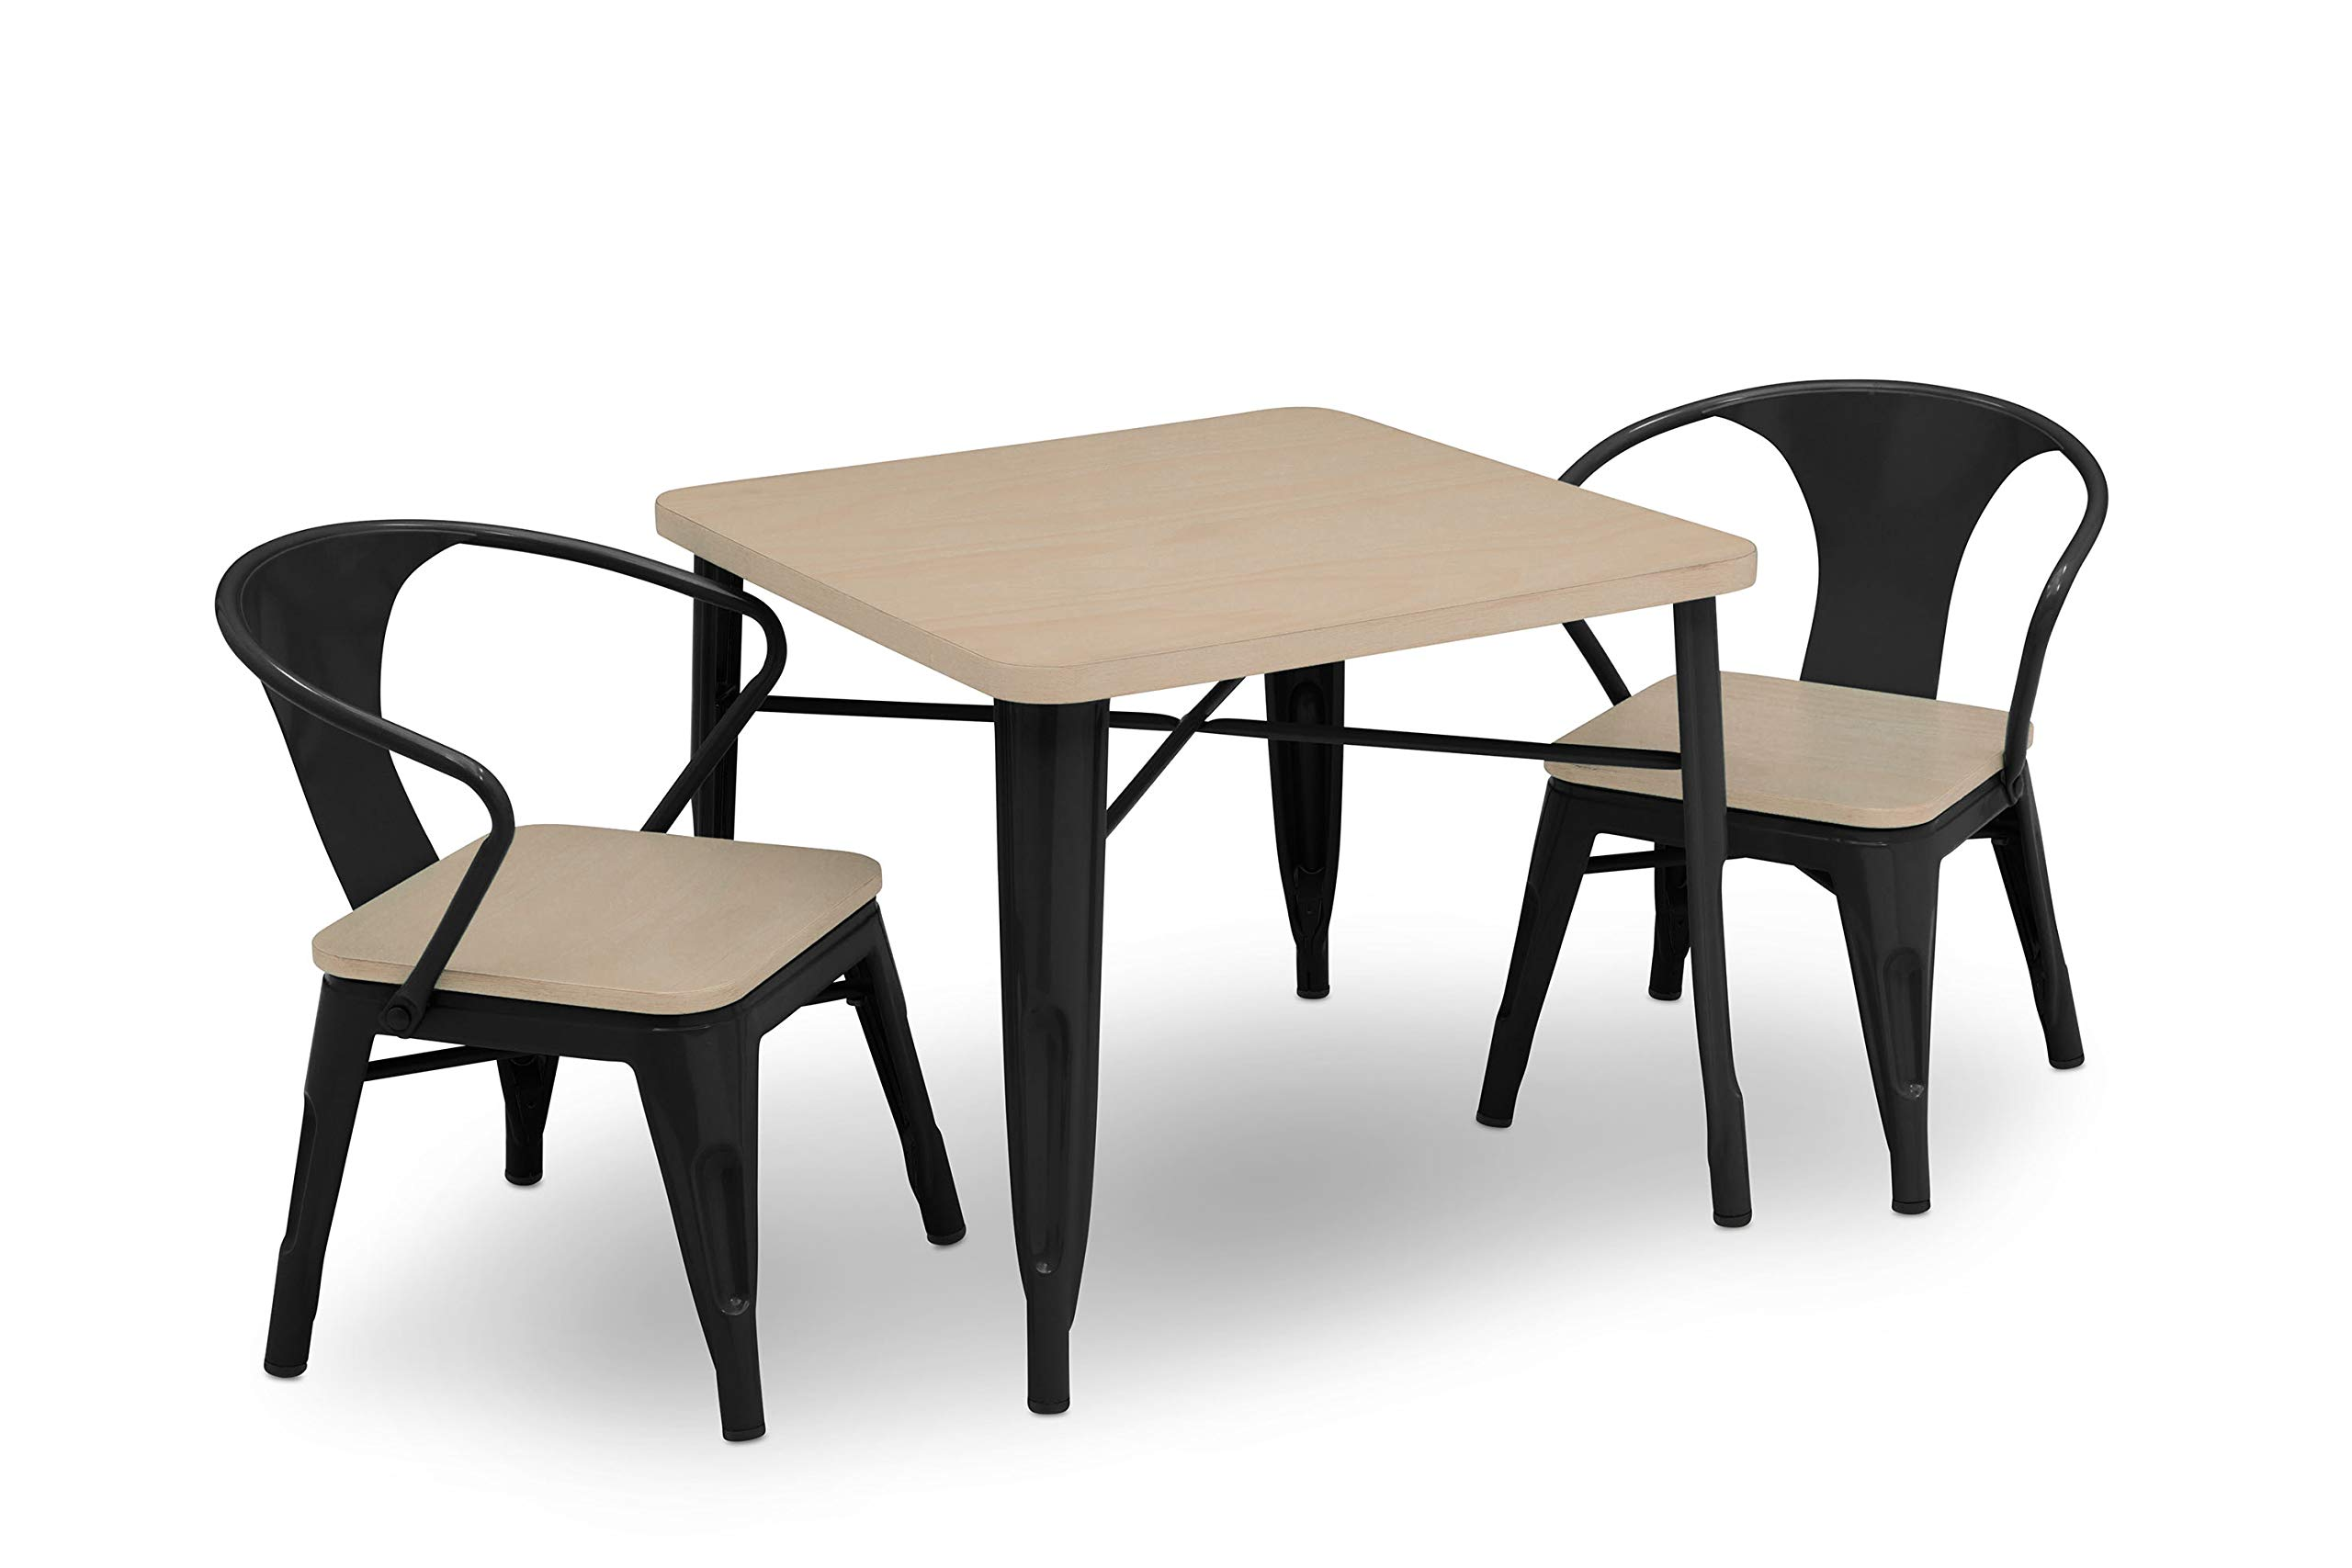 Delta Children Bistro Kids Play Table with 2-Piece Chair Set | Black with Driftwood